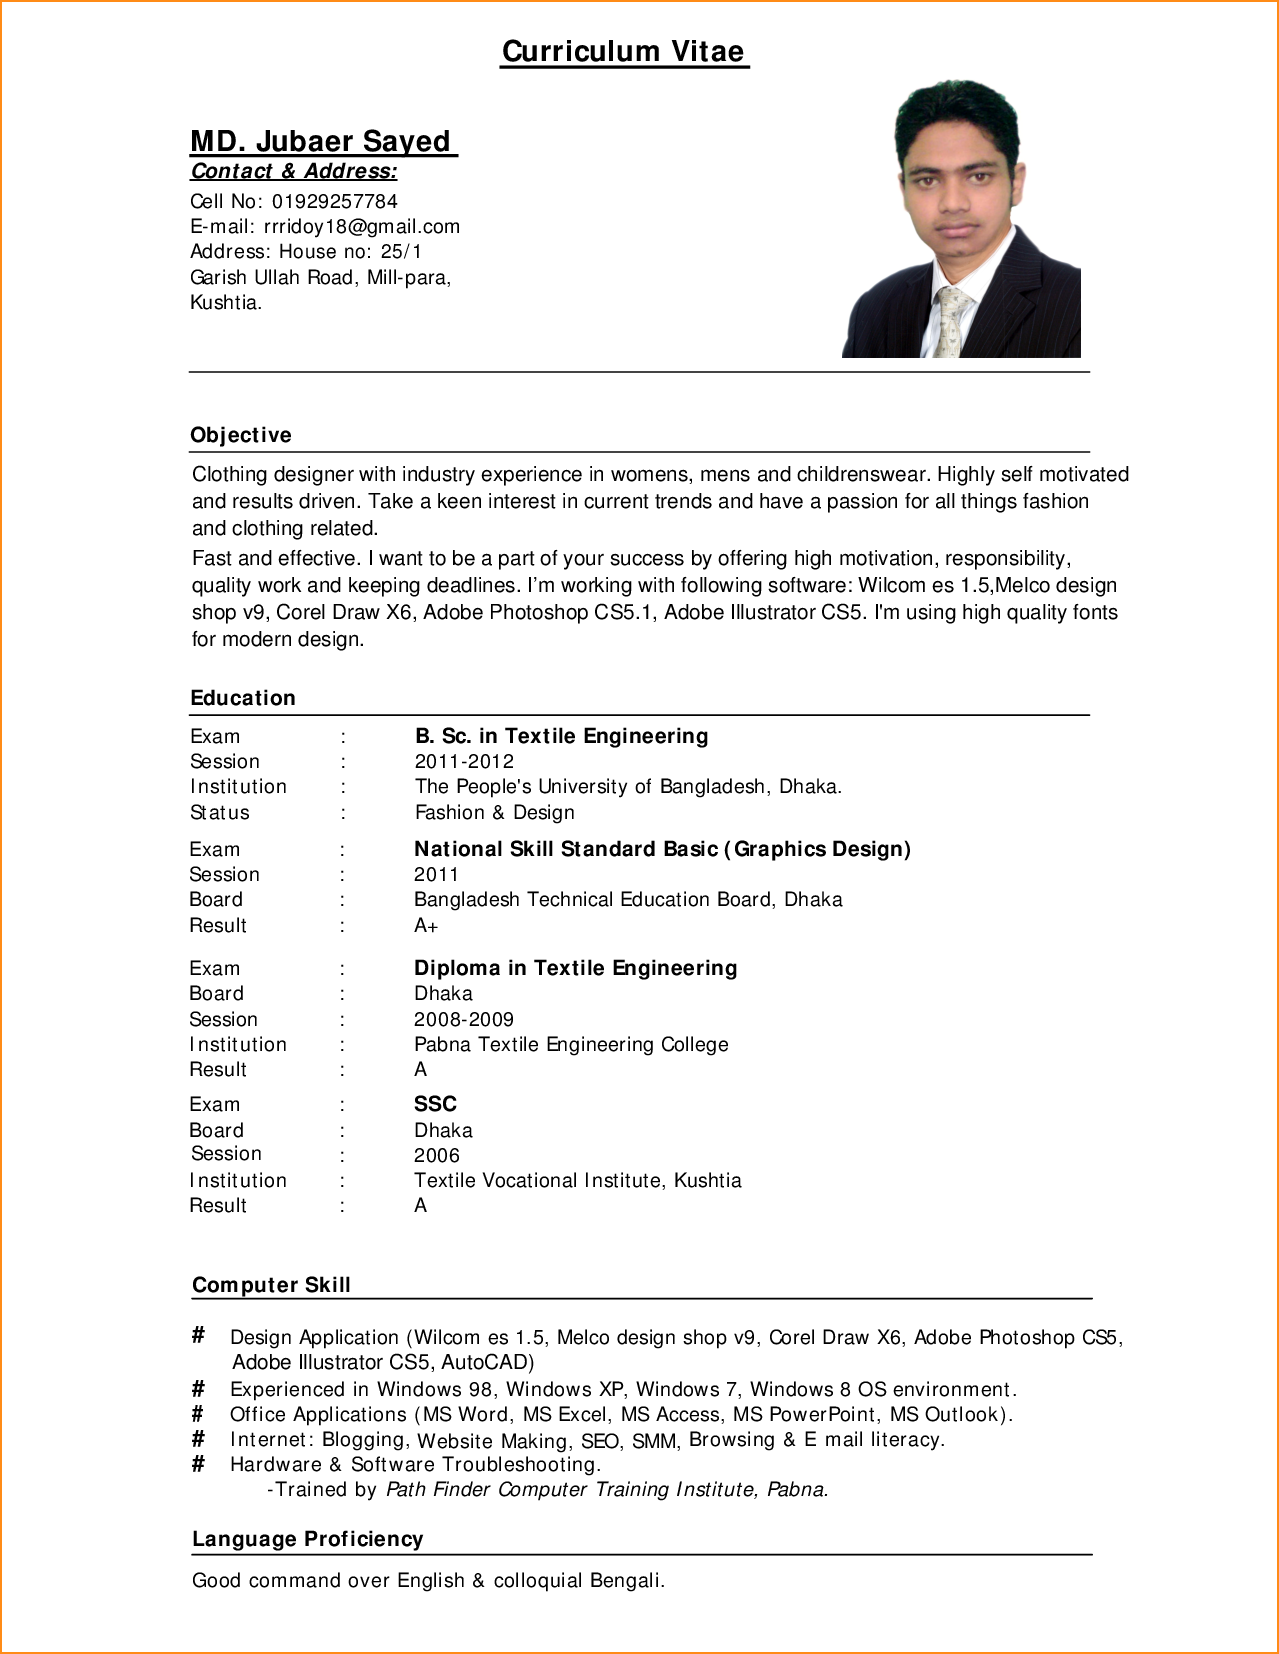 High Quality 10 Sample Cv For Job Application Pdf Basic Job Appication Letter Sample Cv  For Job